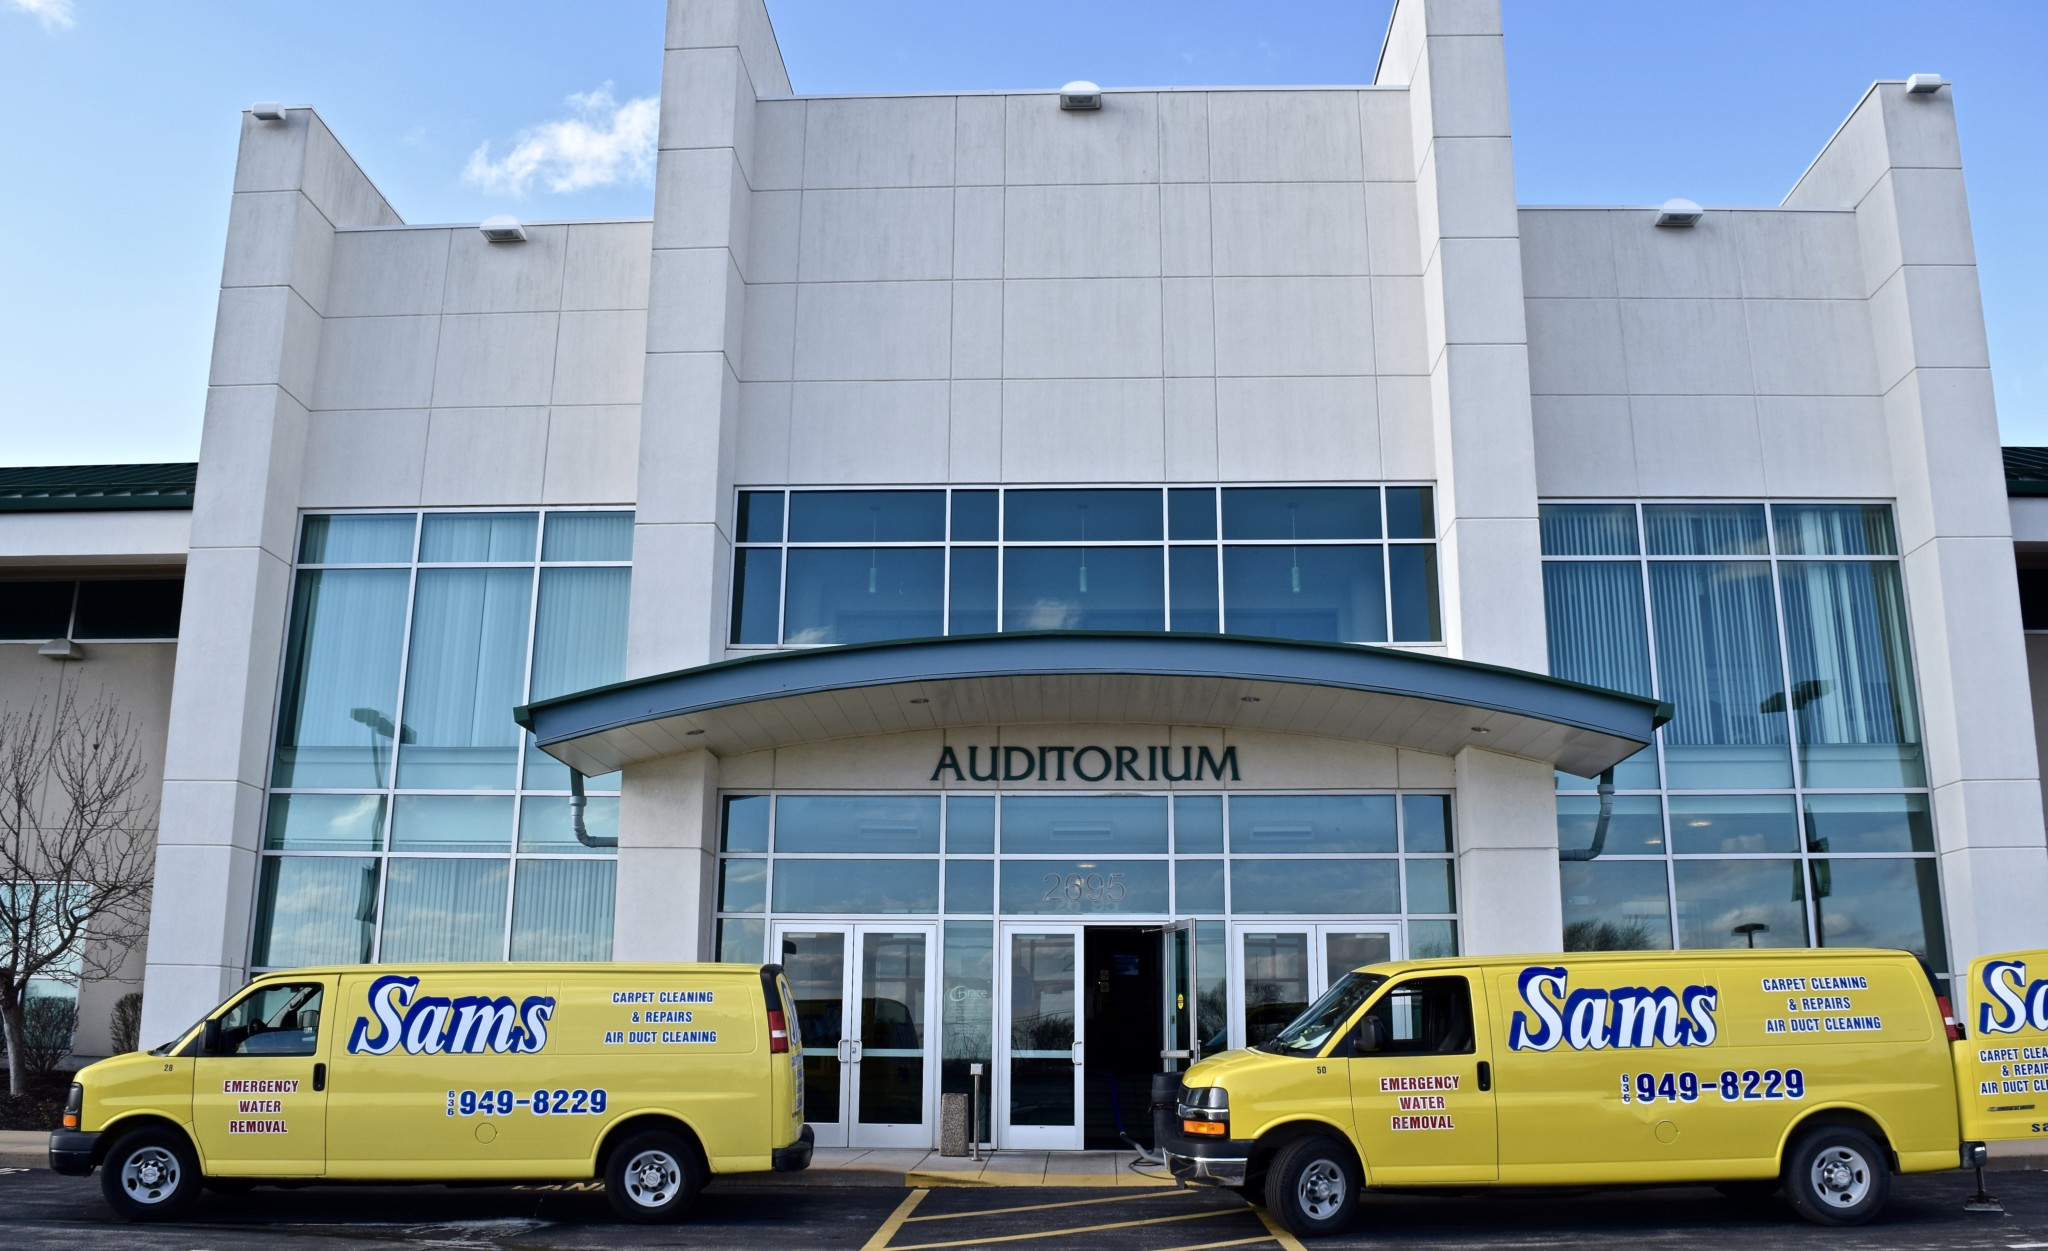 Sams Carpet Cleaning and Repairs van parked outside a commercial building in the St. Louis area